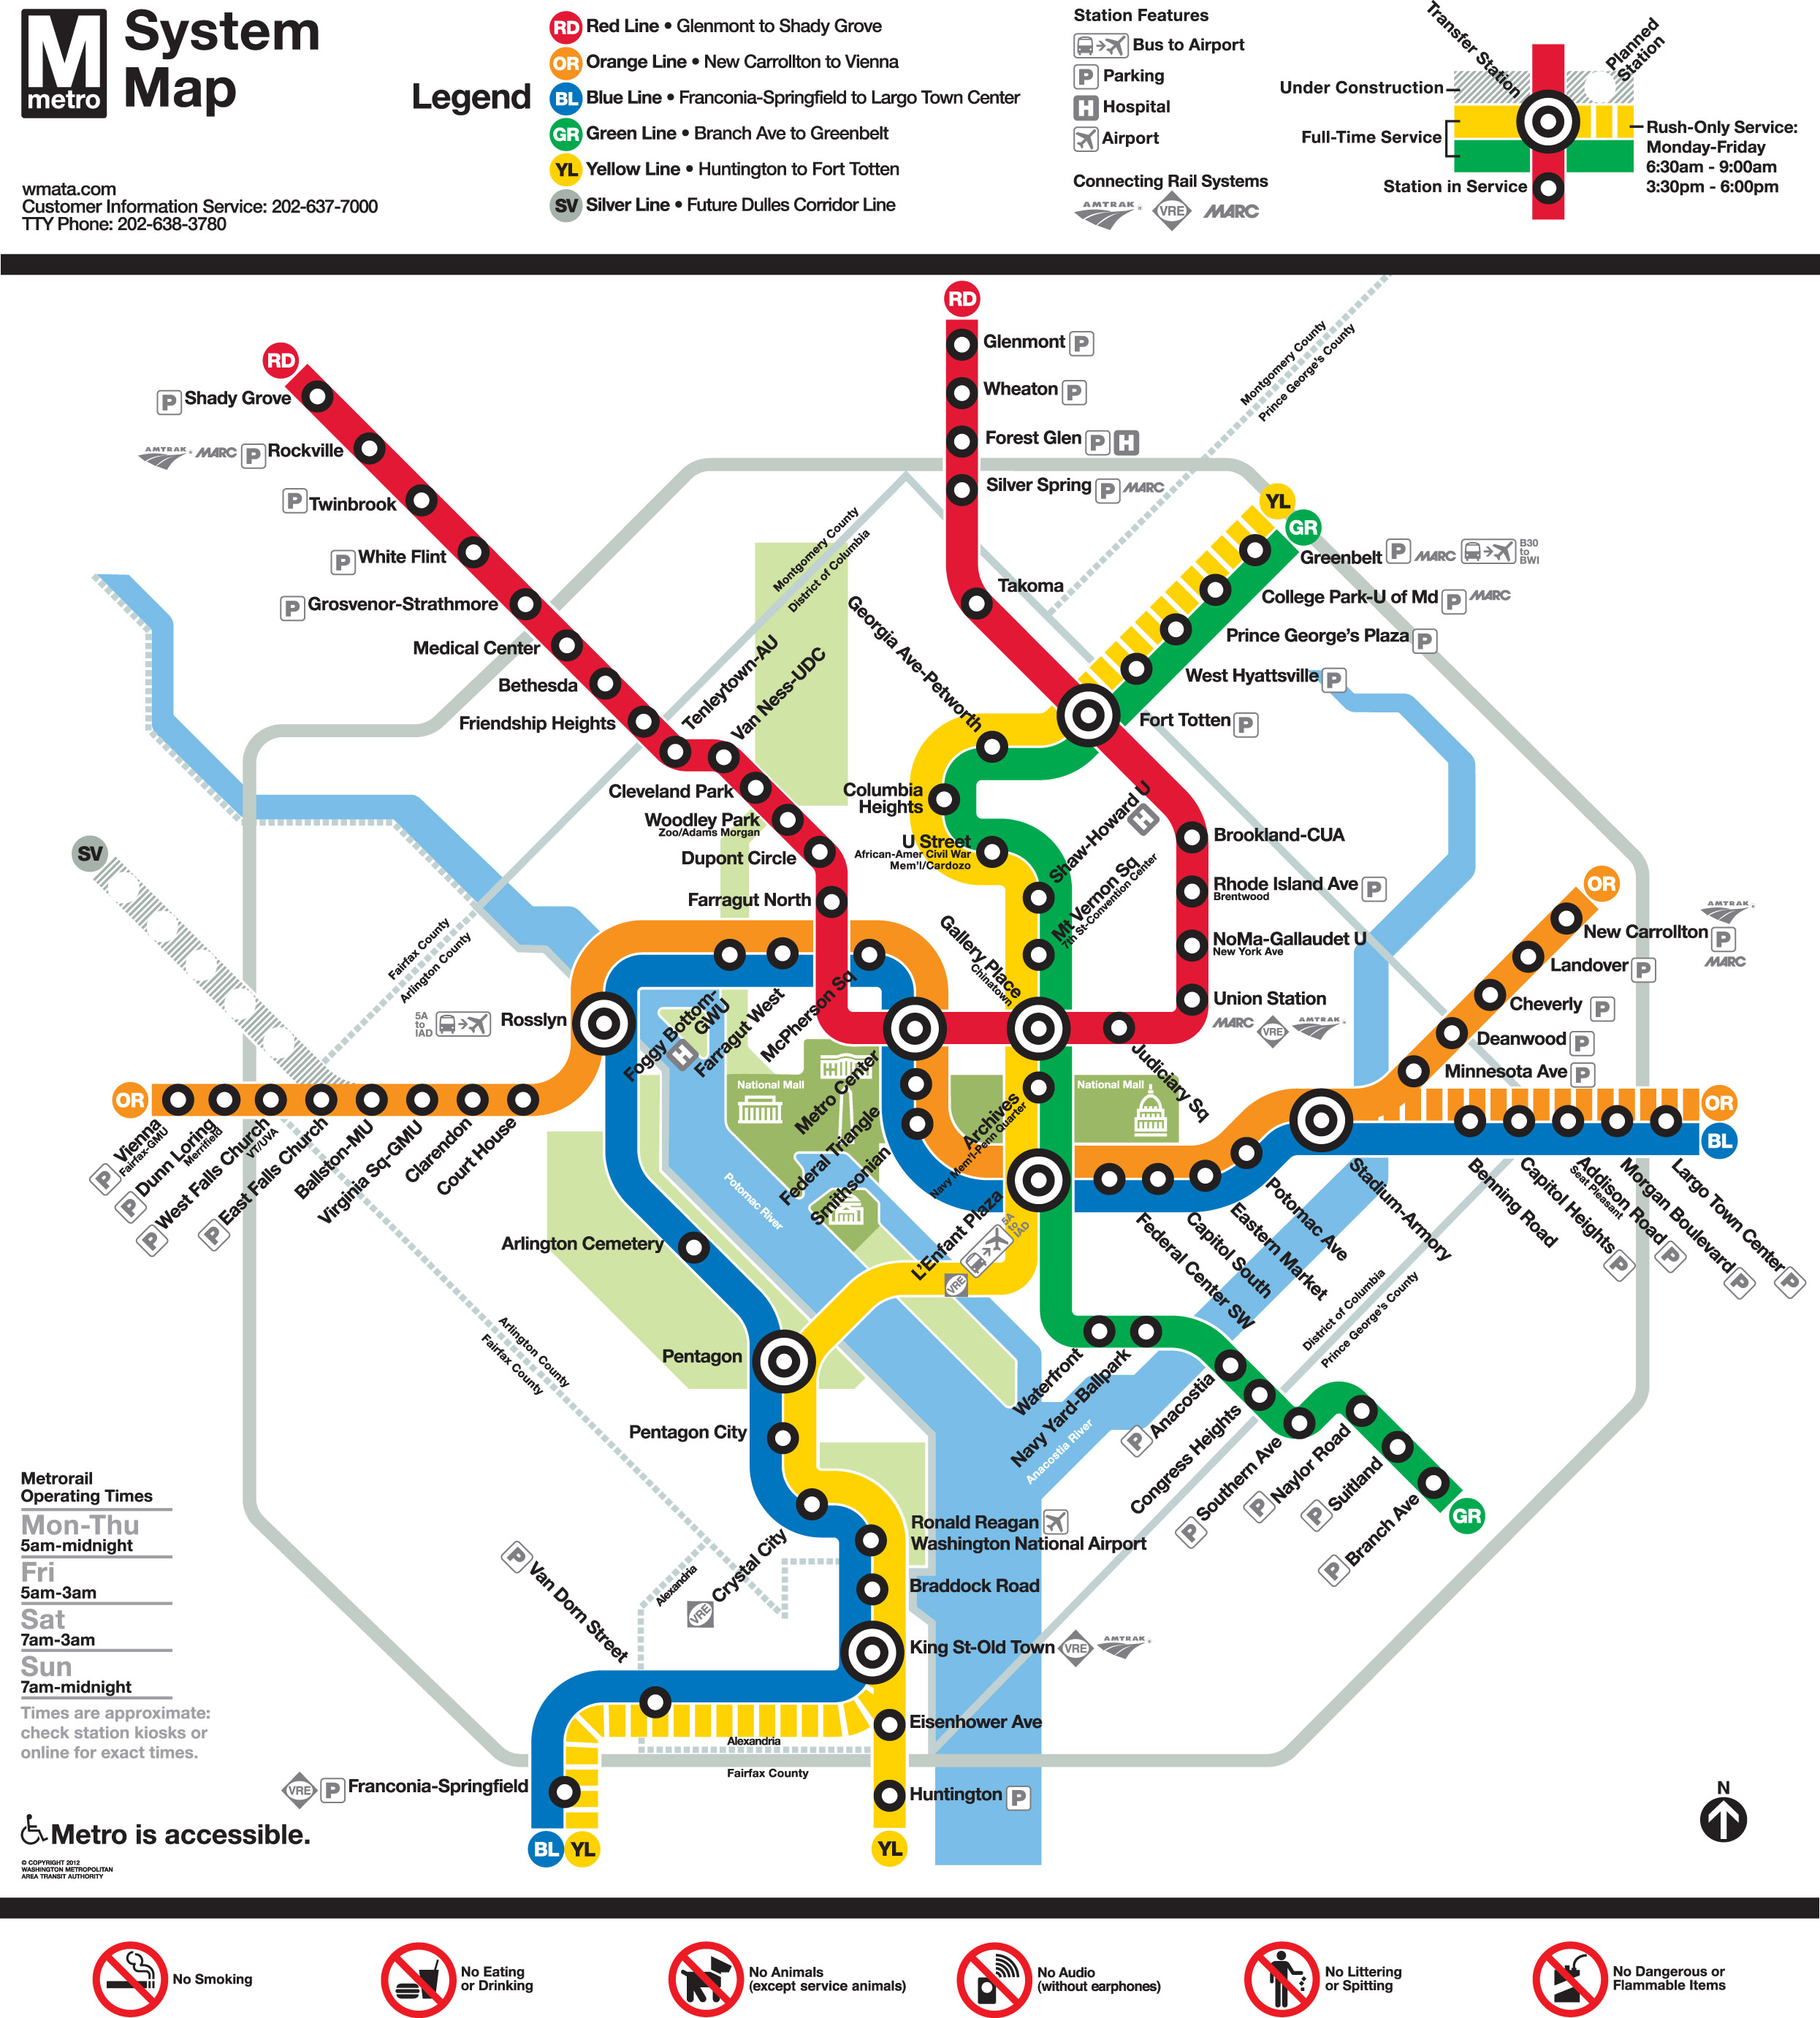 Building A Better Subway Map National Geographic Education Blog